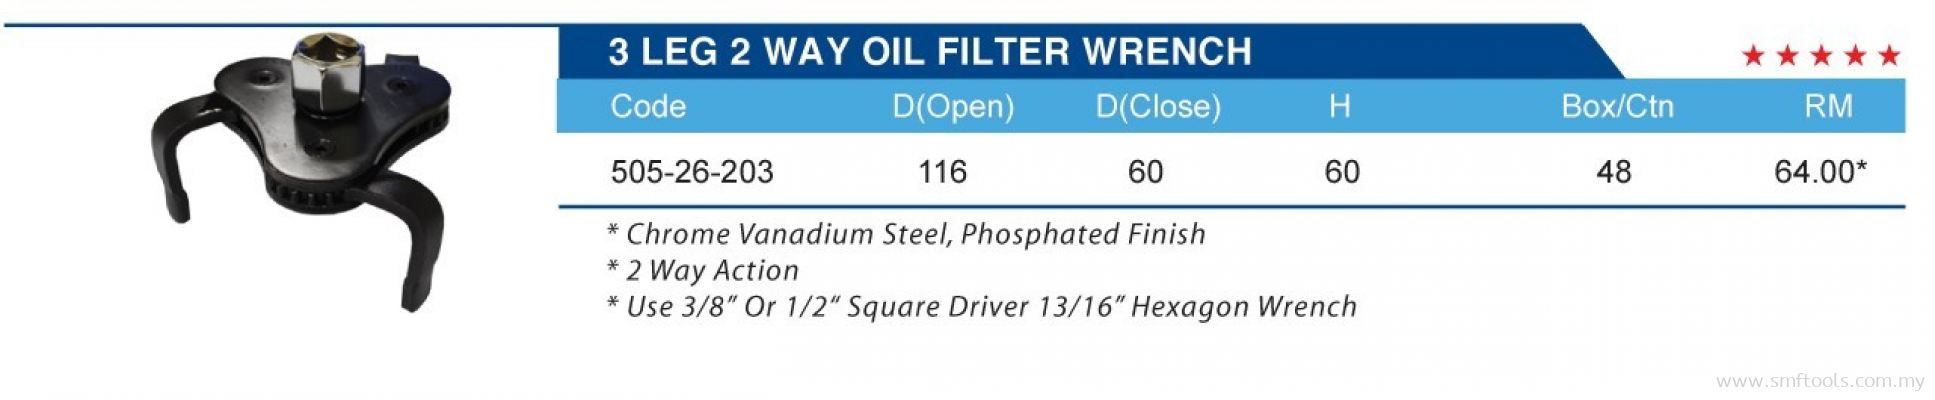 3 LEG 2 WAY OIL FILTER WRENCH